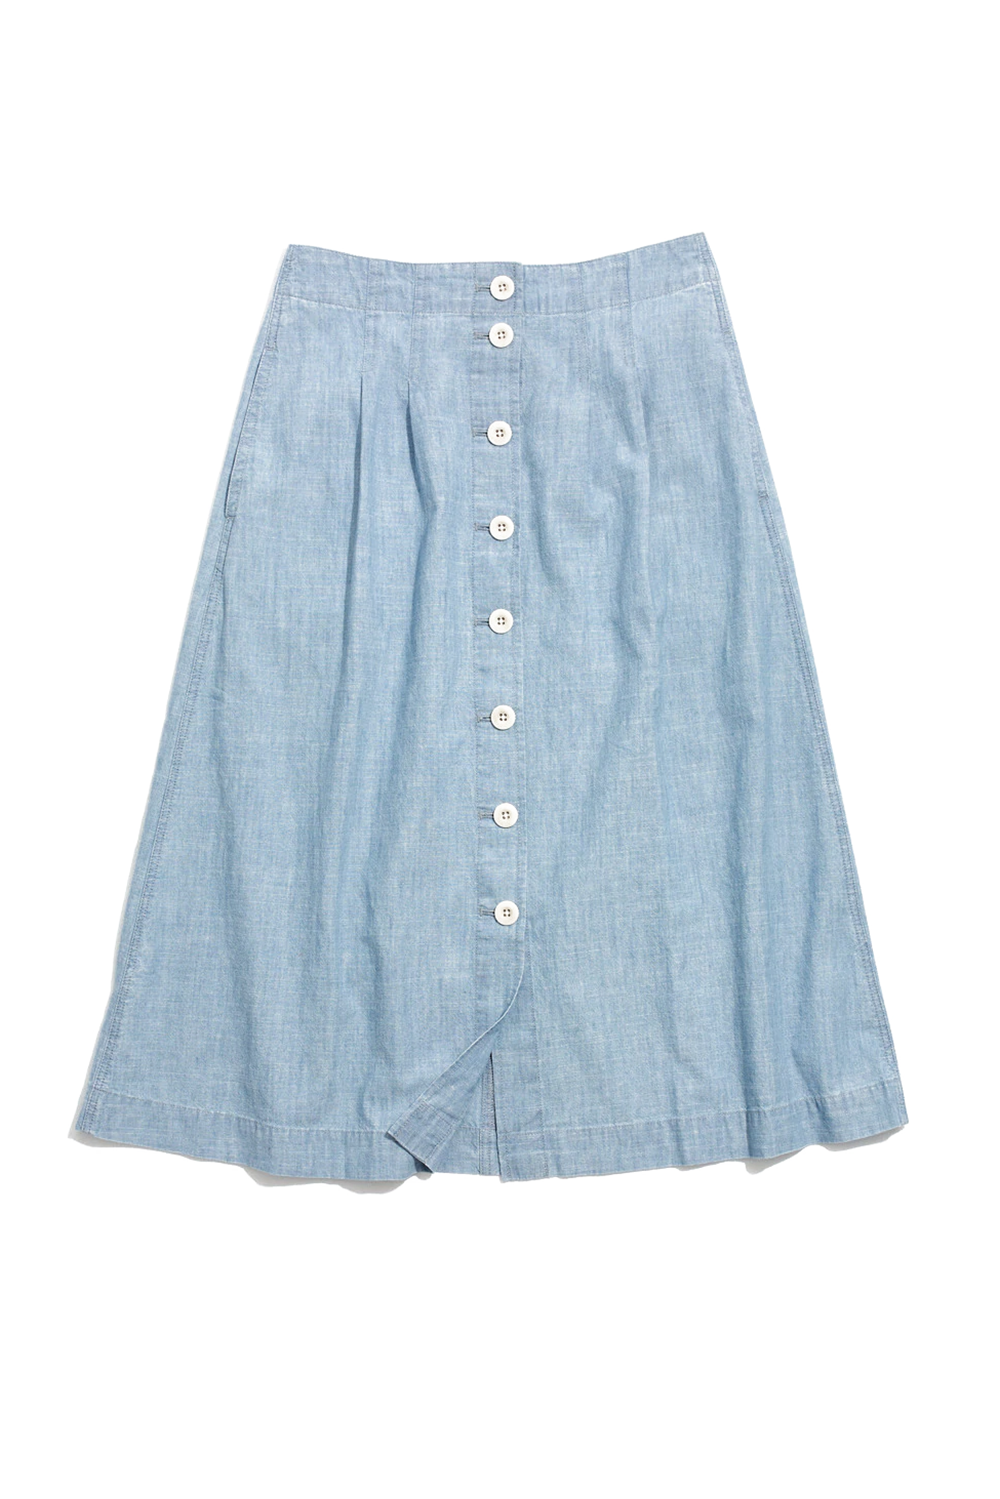 A Chambray Midi Skirt Madewell madewell.com $98.00 SHOP IT Madewell is starting to drop its spring products, like this cottom chambray skirt that suits every warm-weather activity from boating to picnicking in the park. The swingy midi number has flattering sewn-in pleats at the waist and crisp white buttons all the way down the front to let you decide how much leg you want to show.